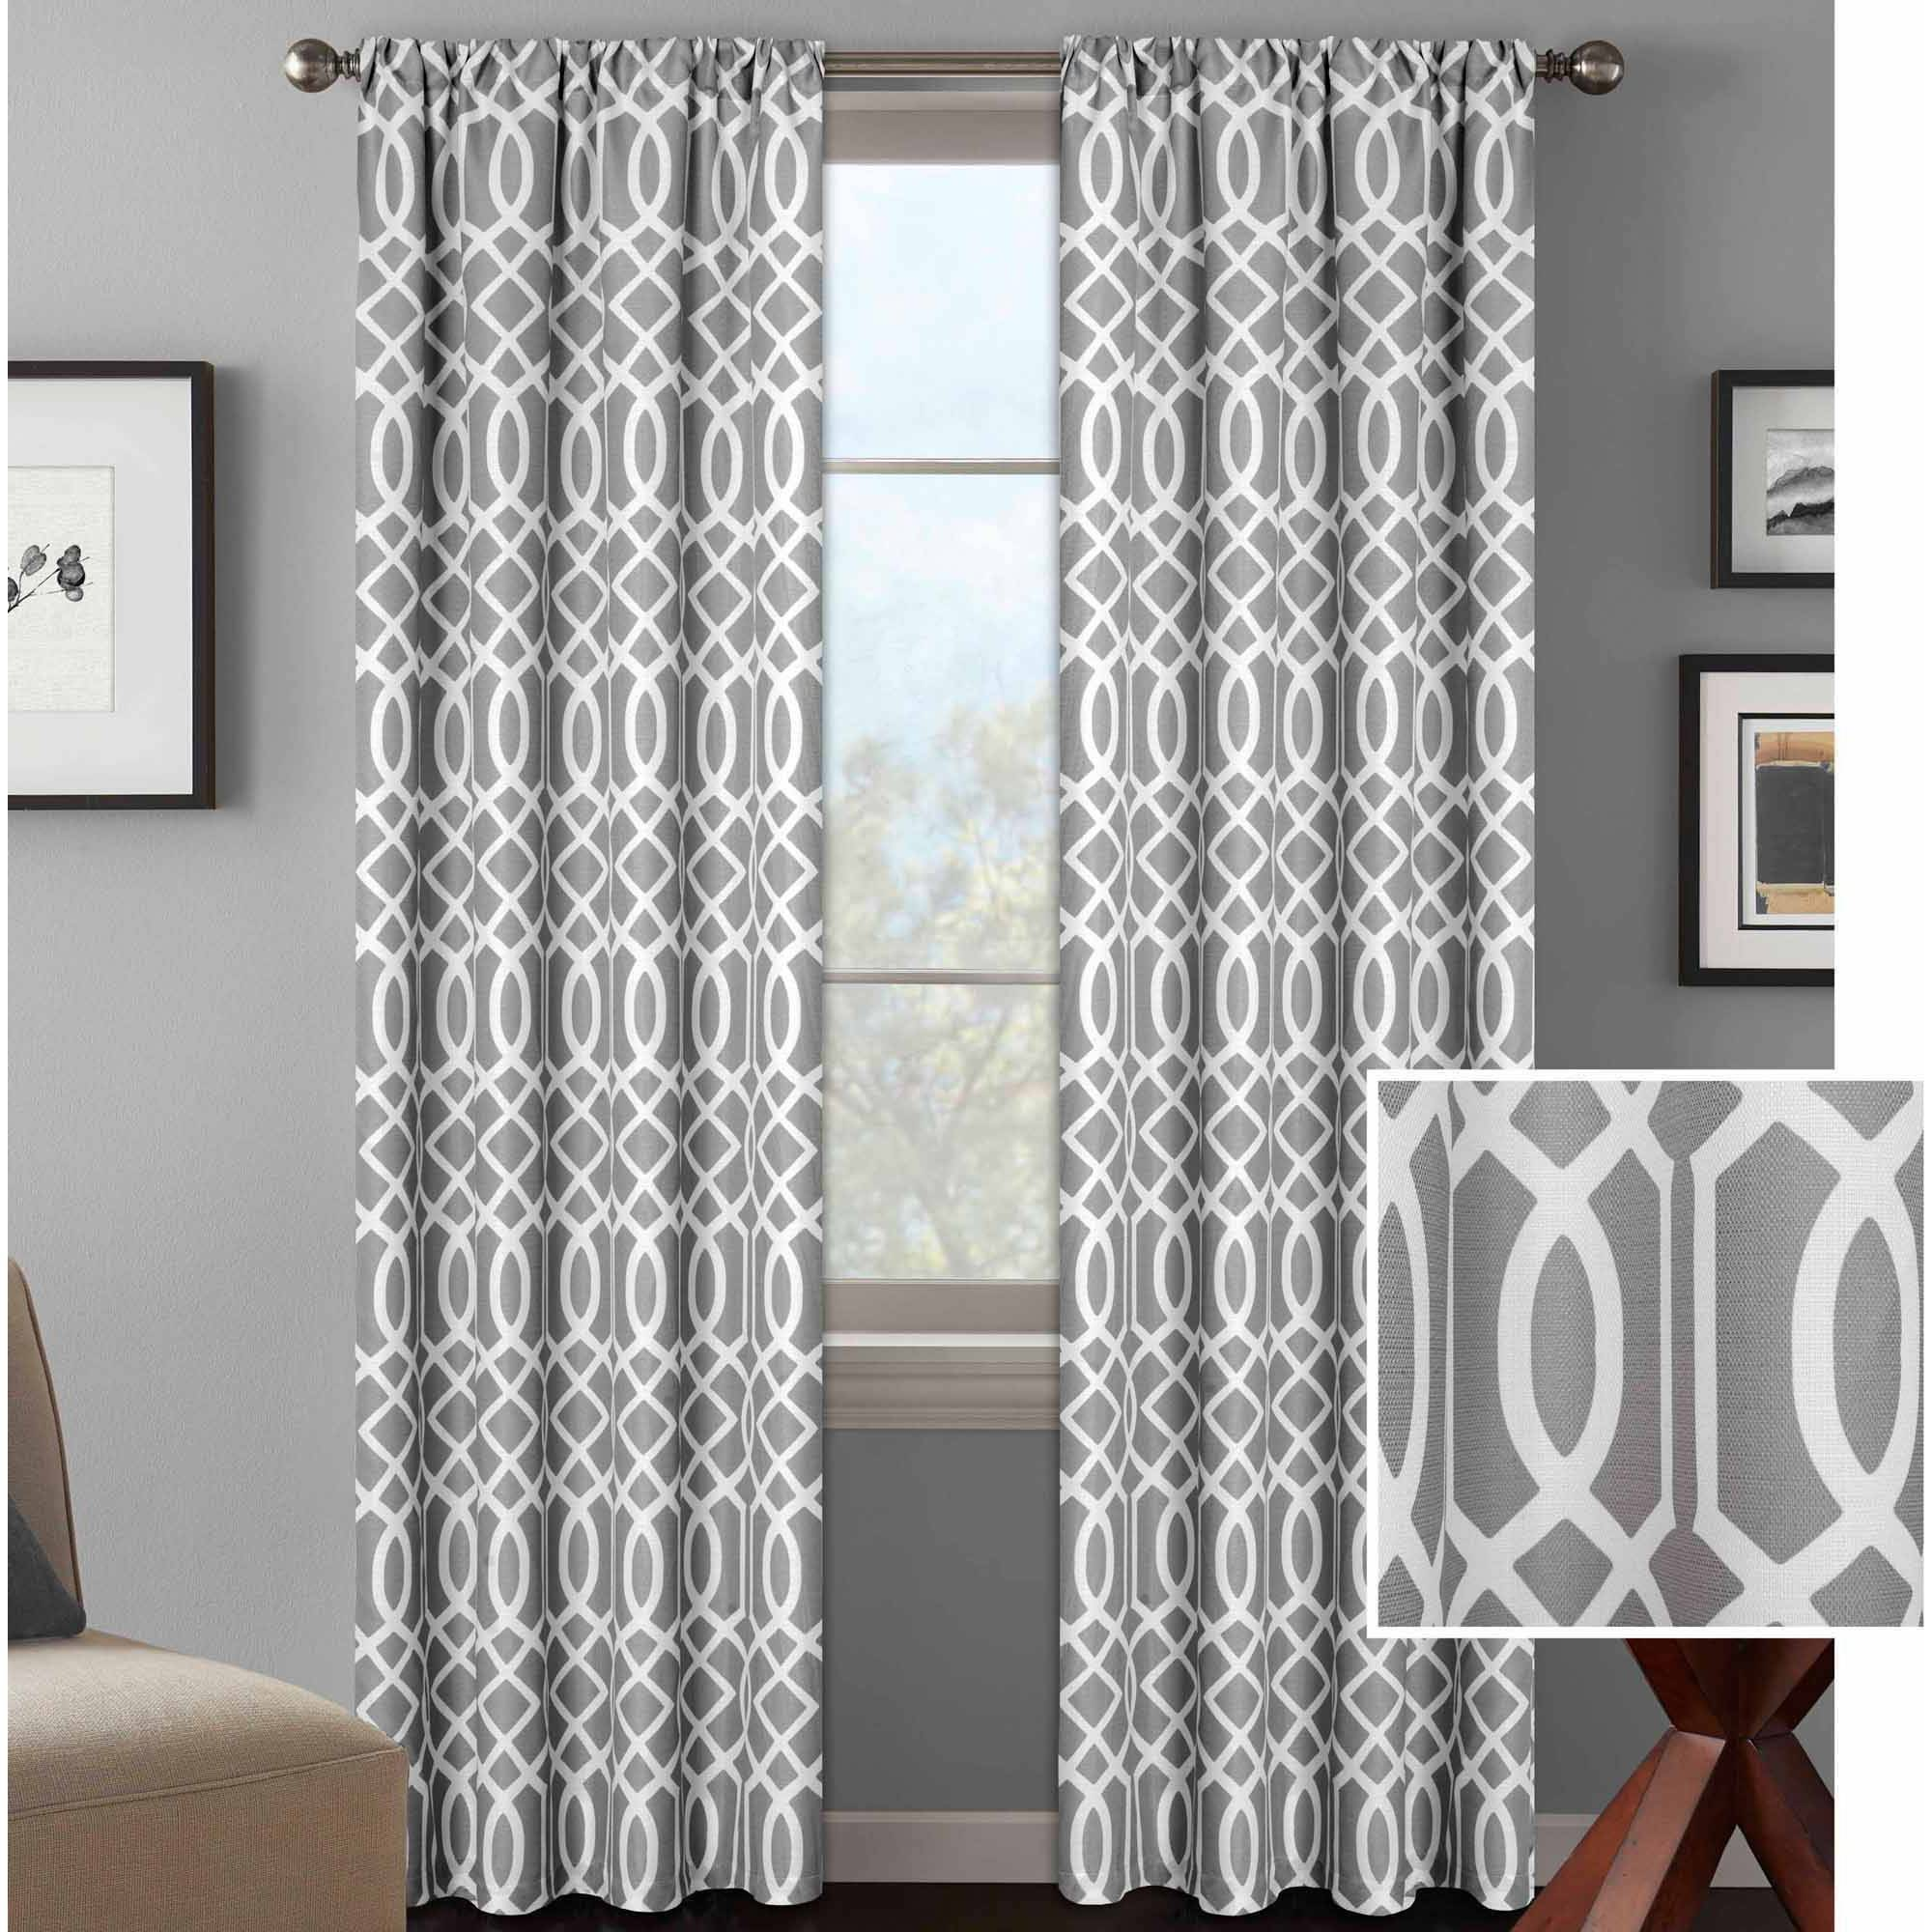 . Riley Girls Bedroom Curtain Panel   Walmart com